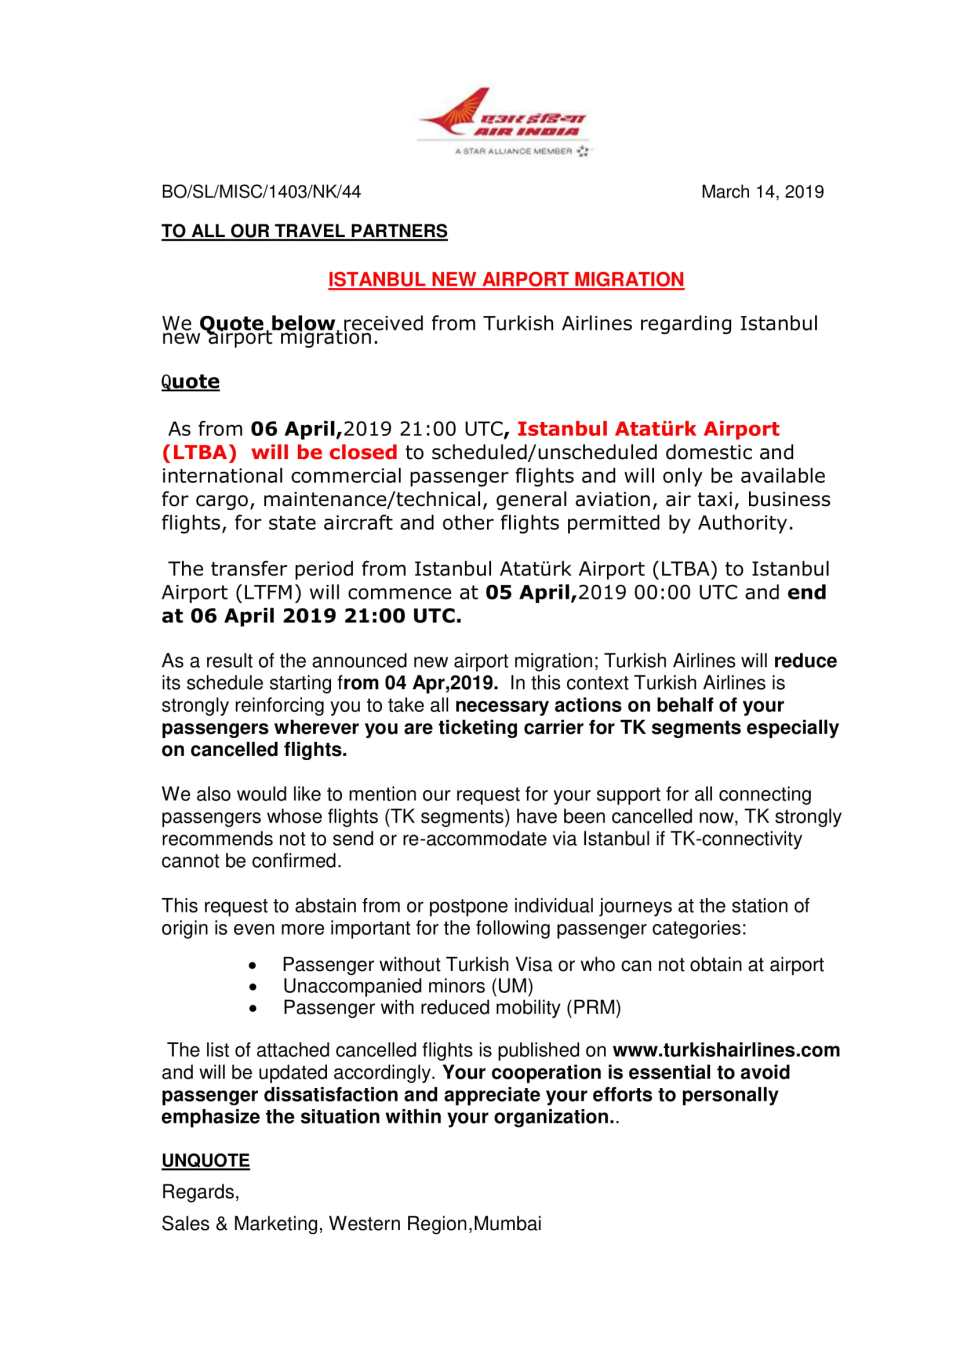 ISTANBUL NEW AIRPORT MIGRATION(CIR 44)-1